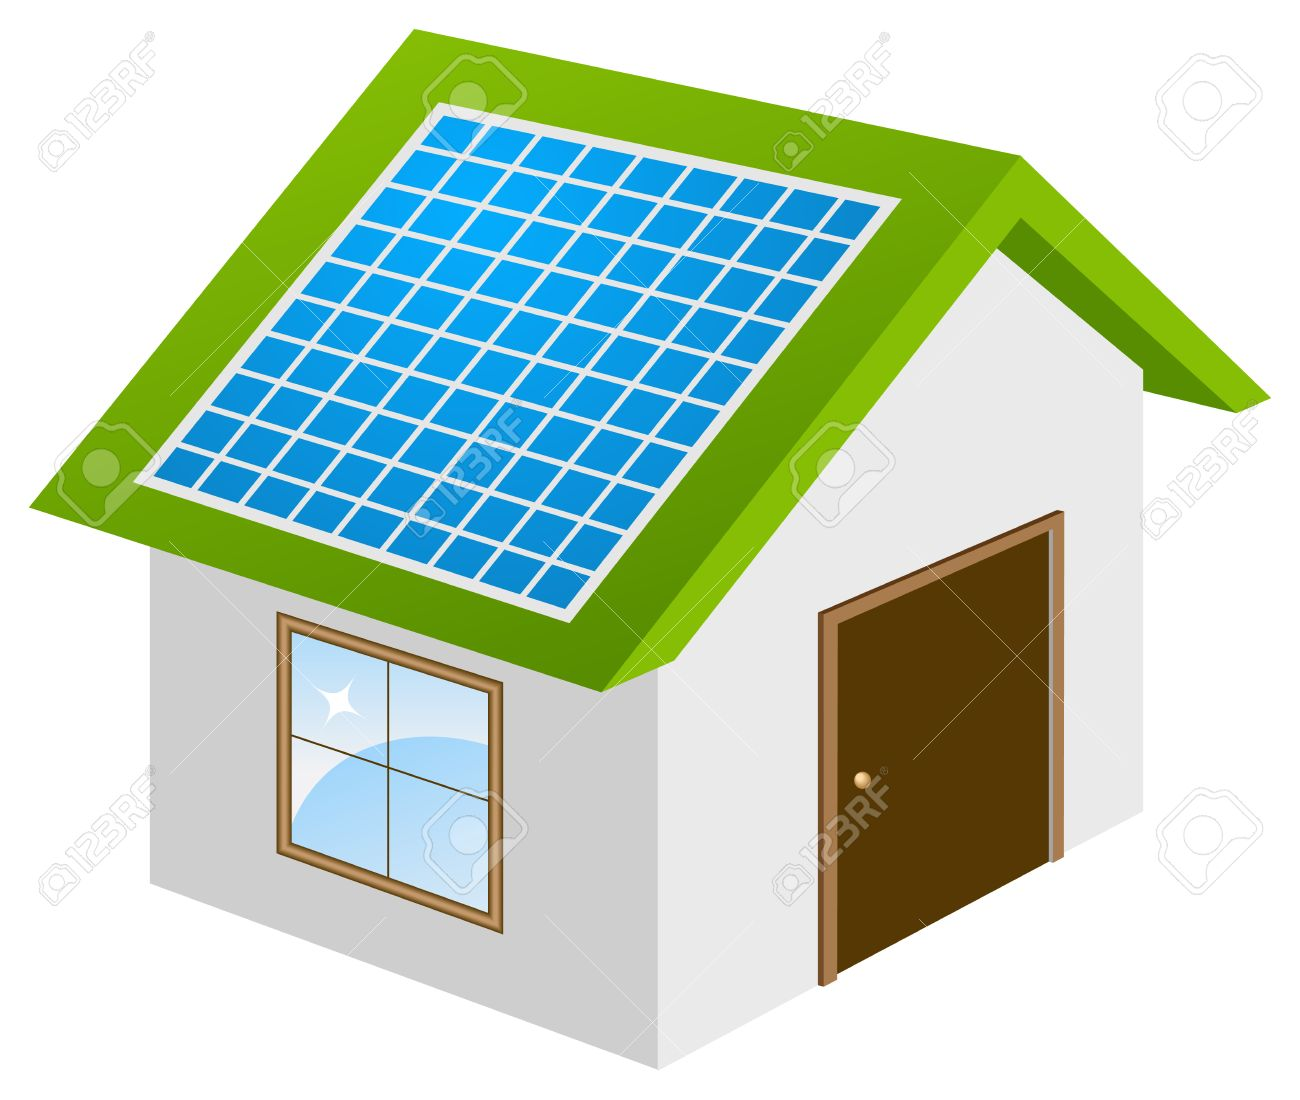 Ecohouse with solar panels 3d model. Vector illustration, isolated on a white. Stock Vector - 6559898